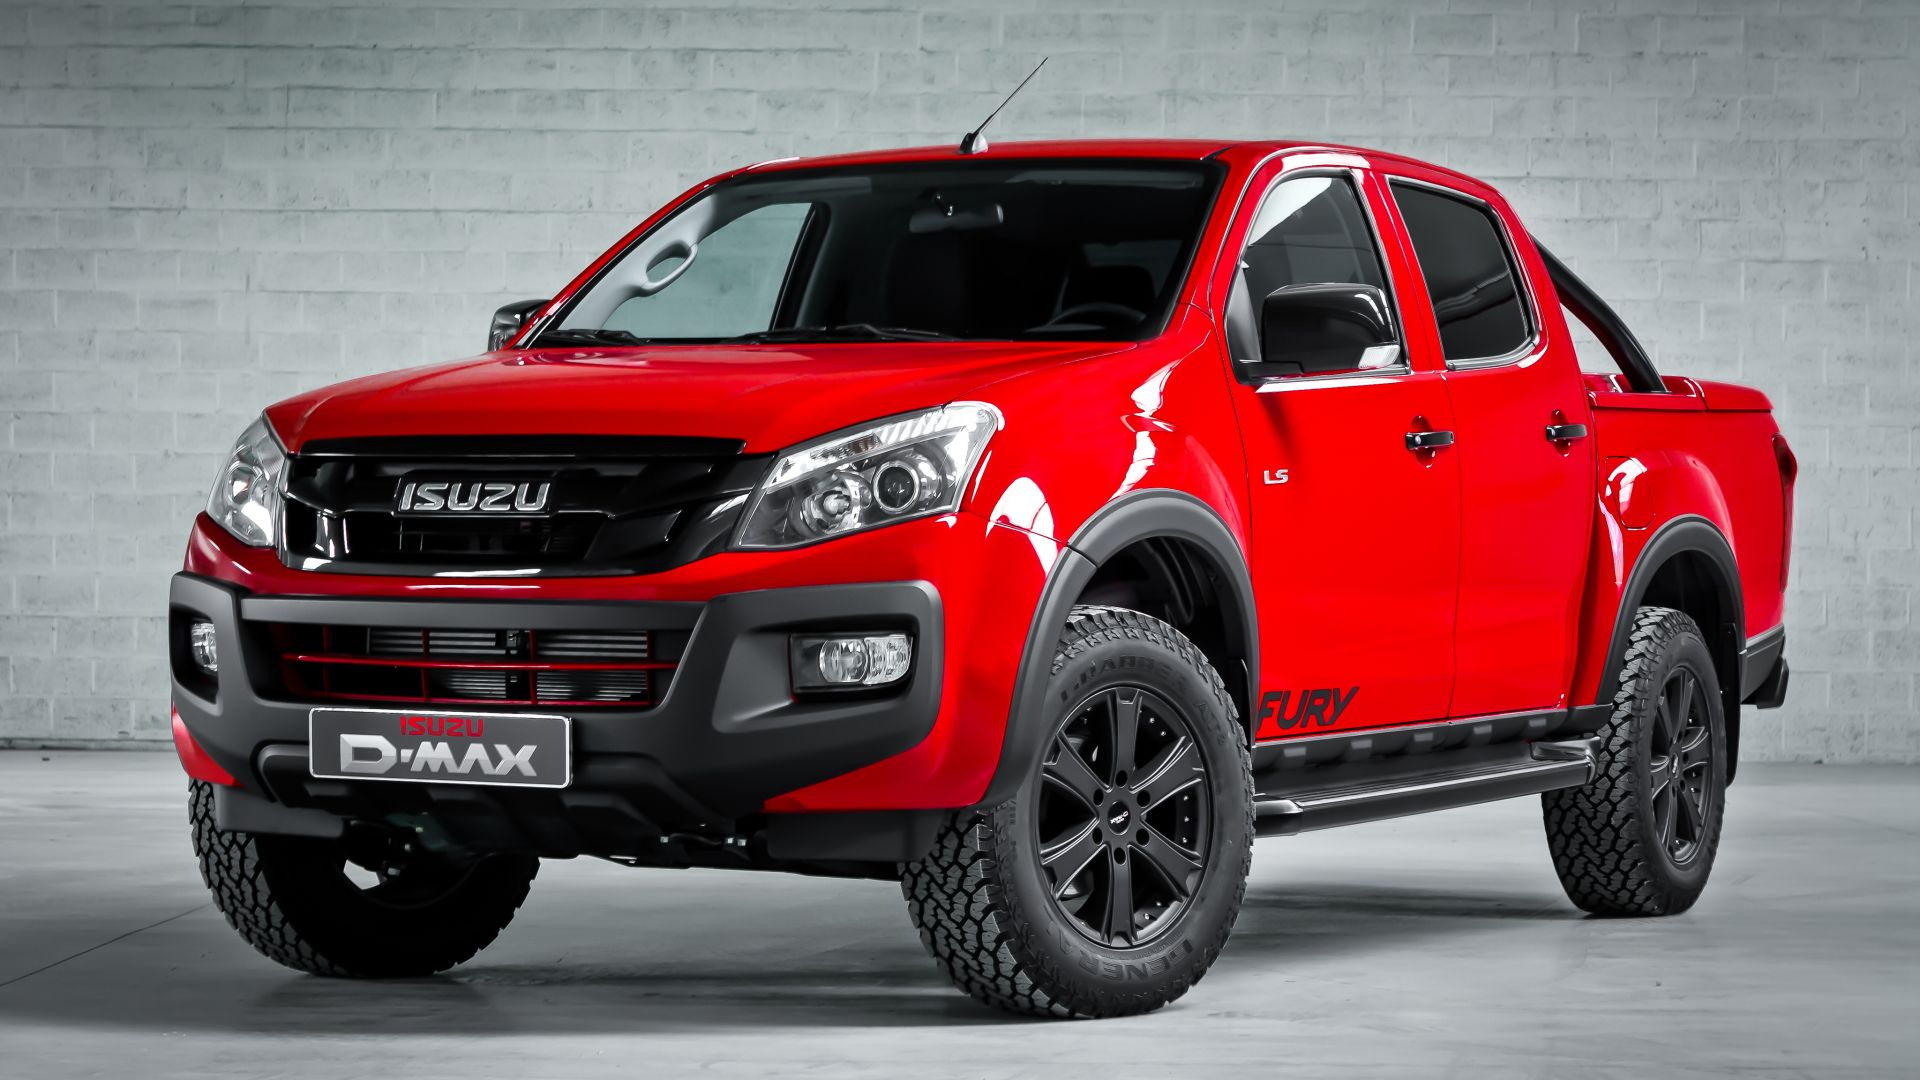 Classic Cars And Girls Wallpaper Wallpaper Isuzu D Max Quot Fury Quot Double Cab Pick Up Red